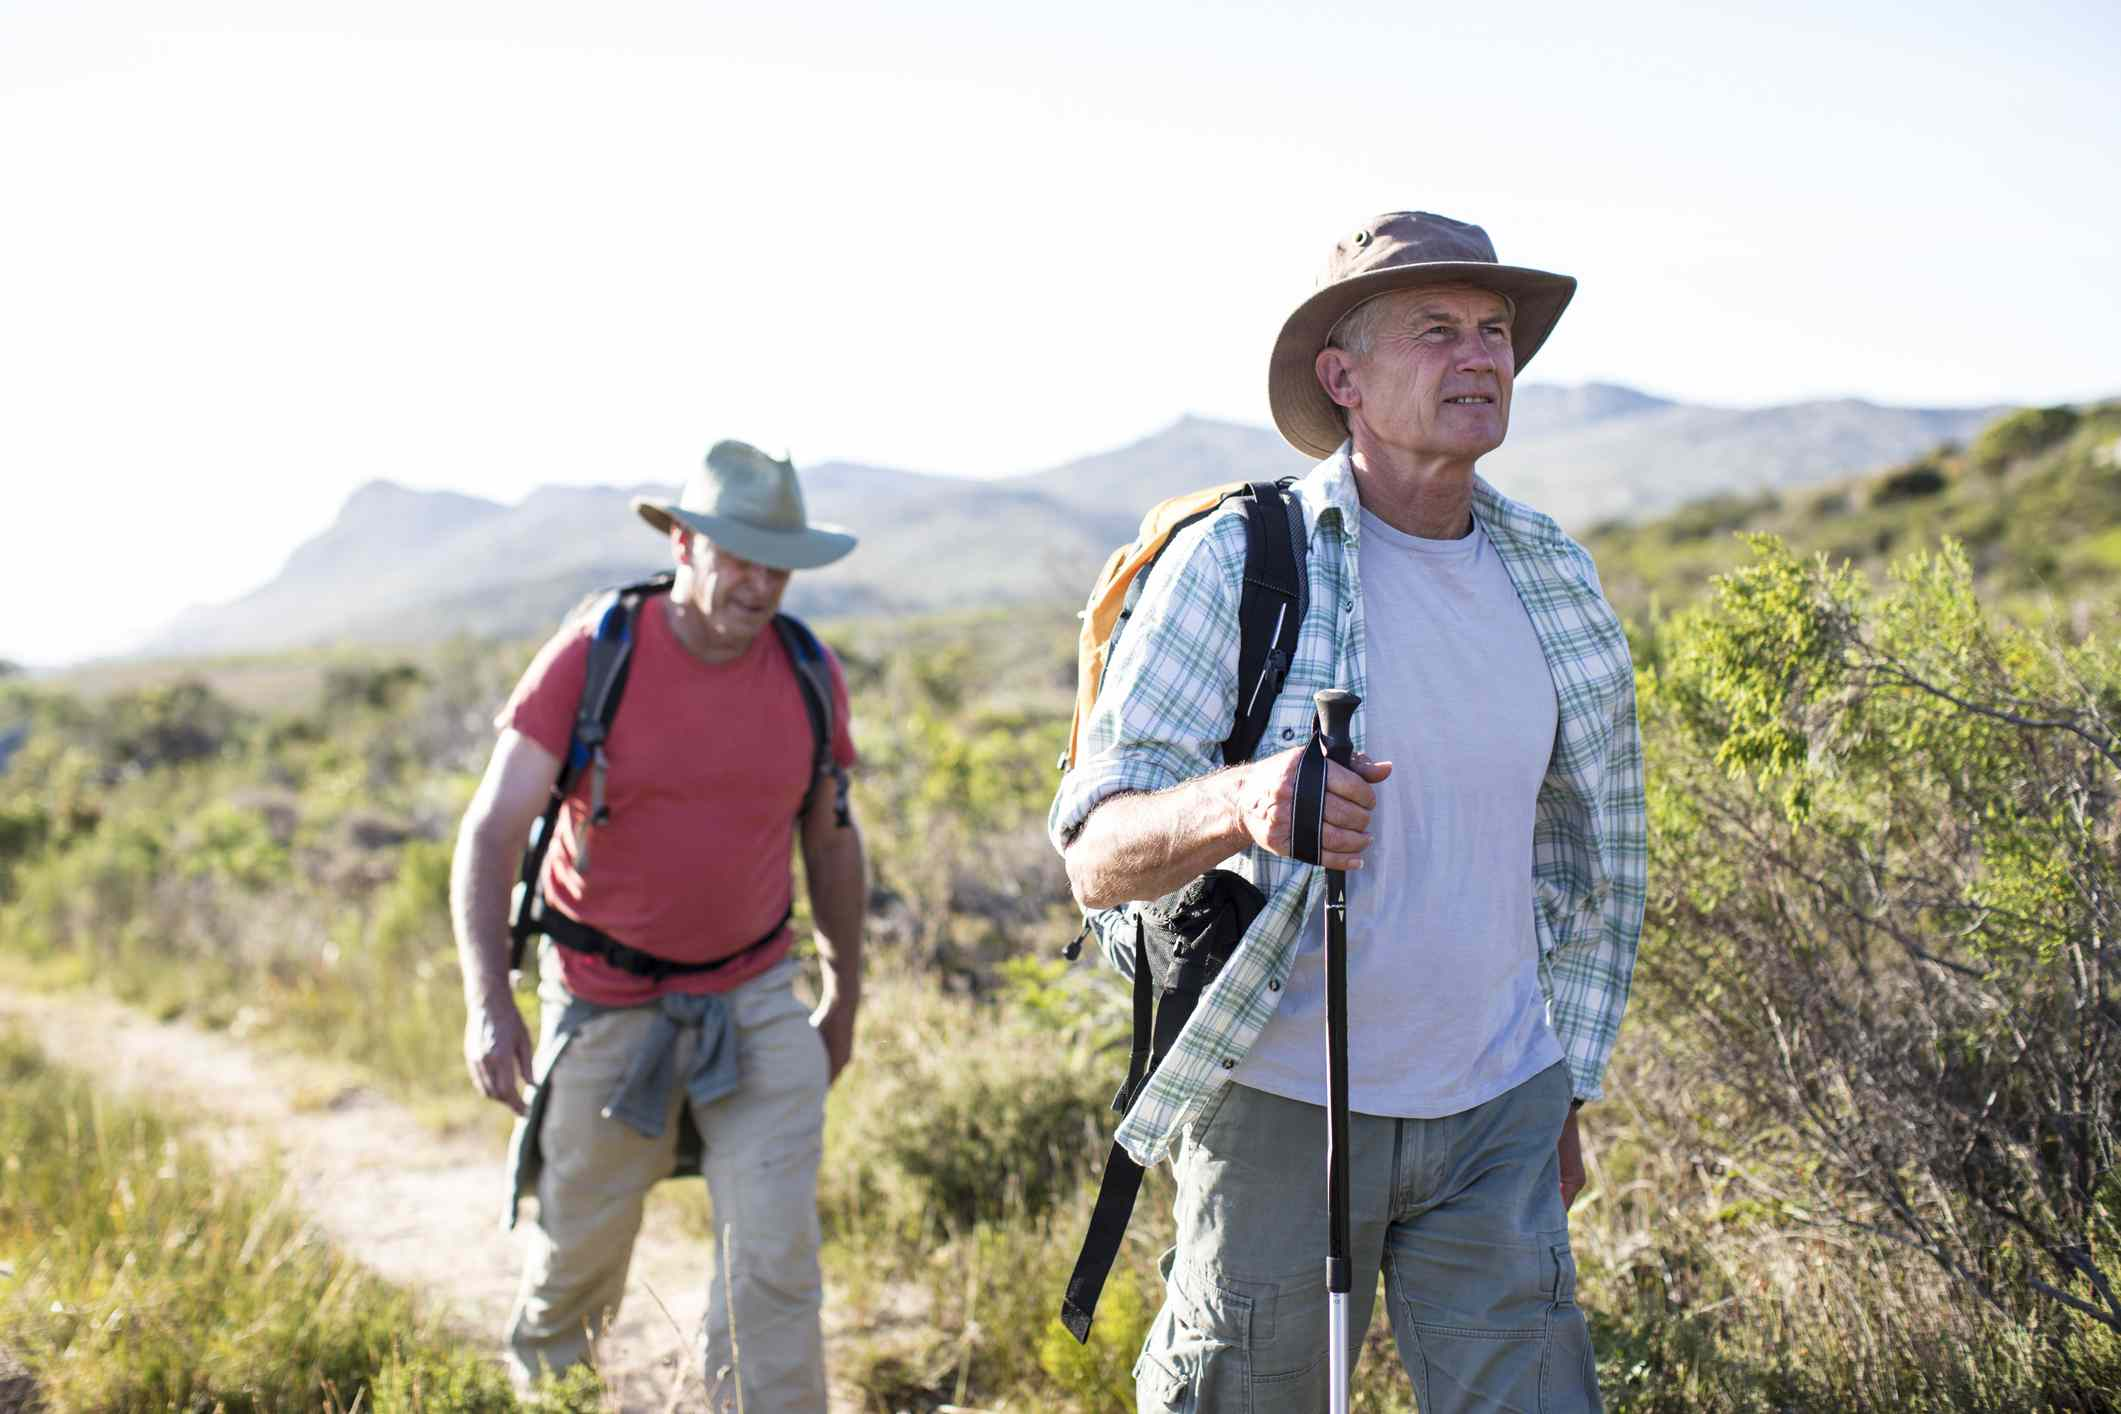 Two older men on a hiking trail in South Africa